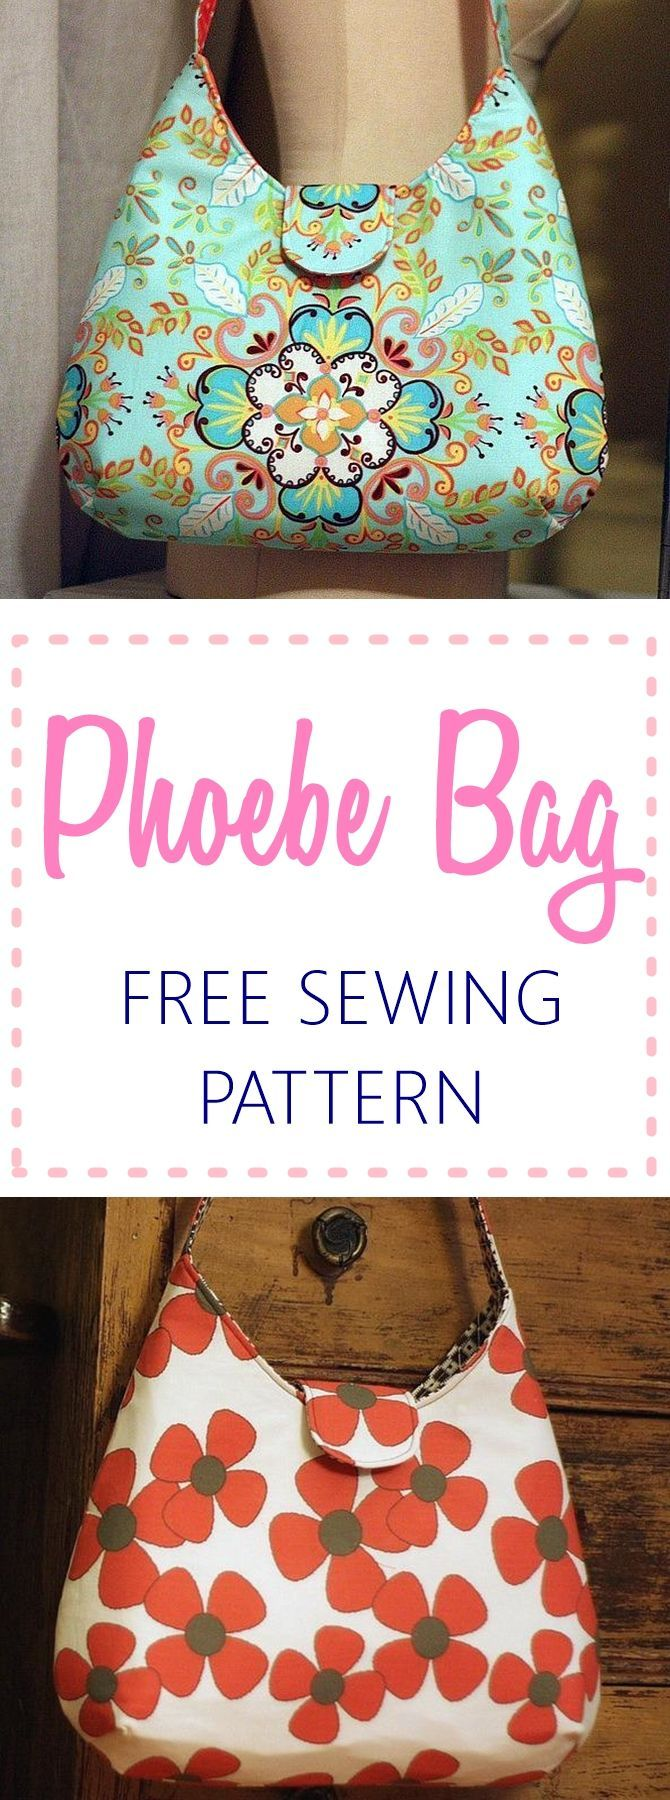 Phoebe bag free sewing pattern - perfect for beginners | handbag patterns | purse patterns